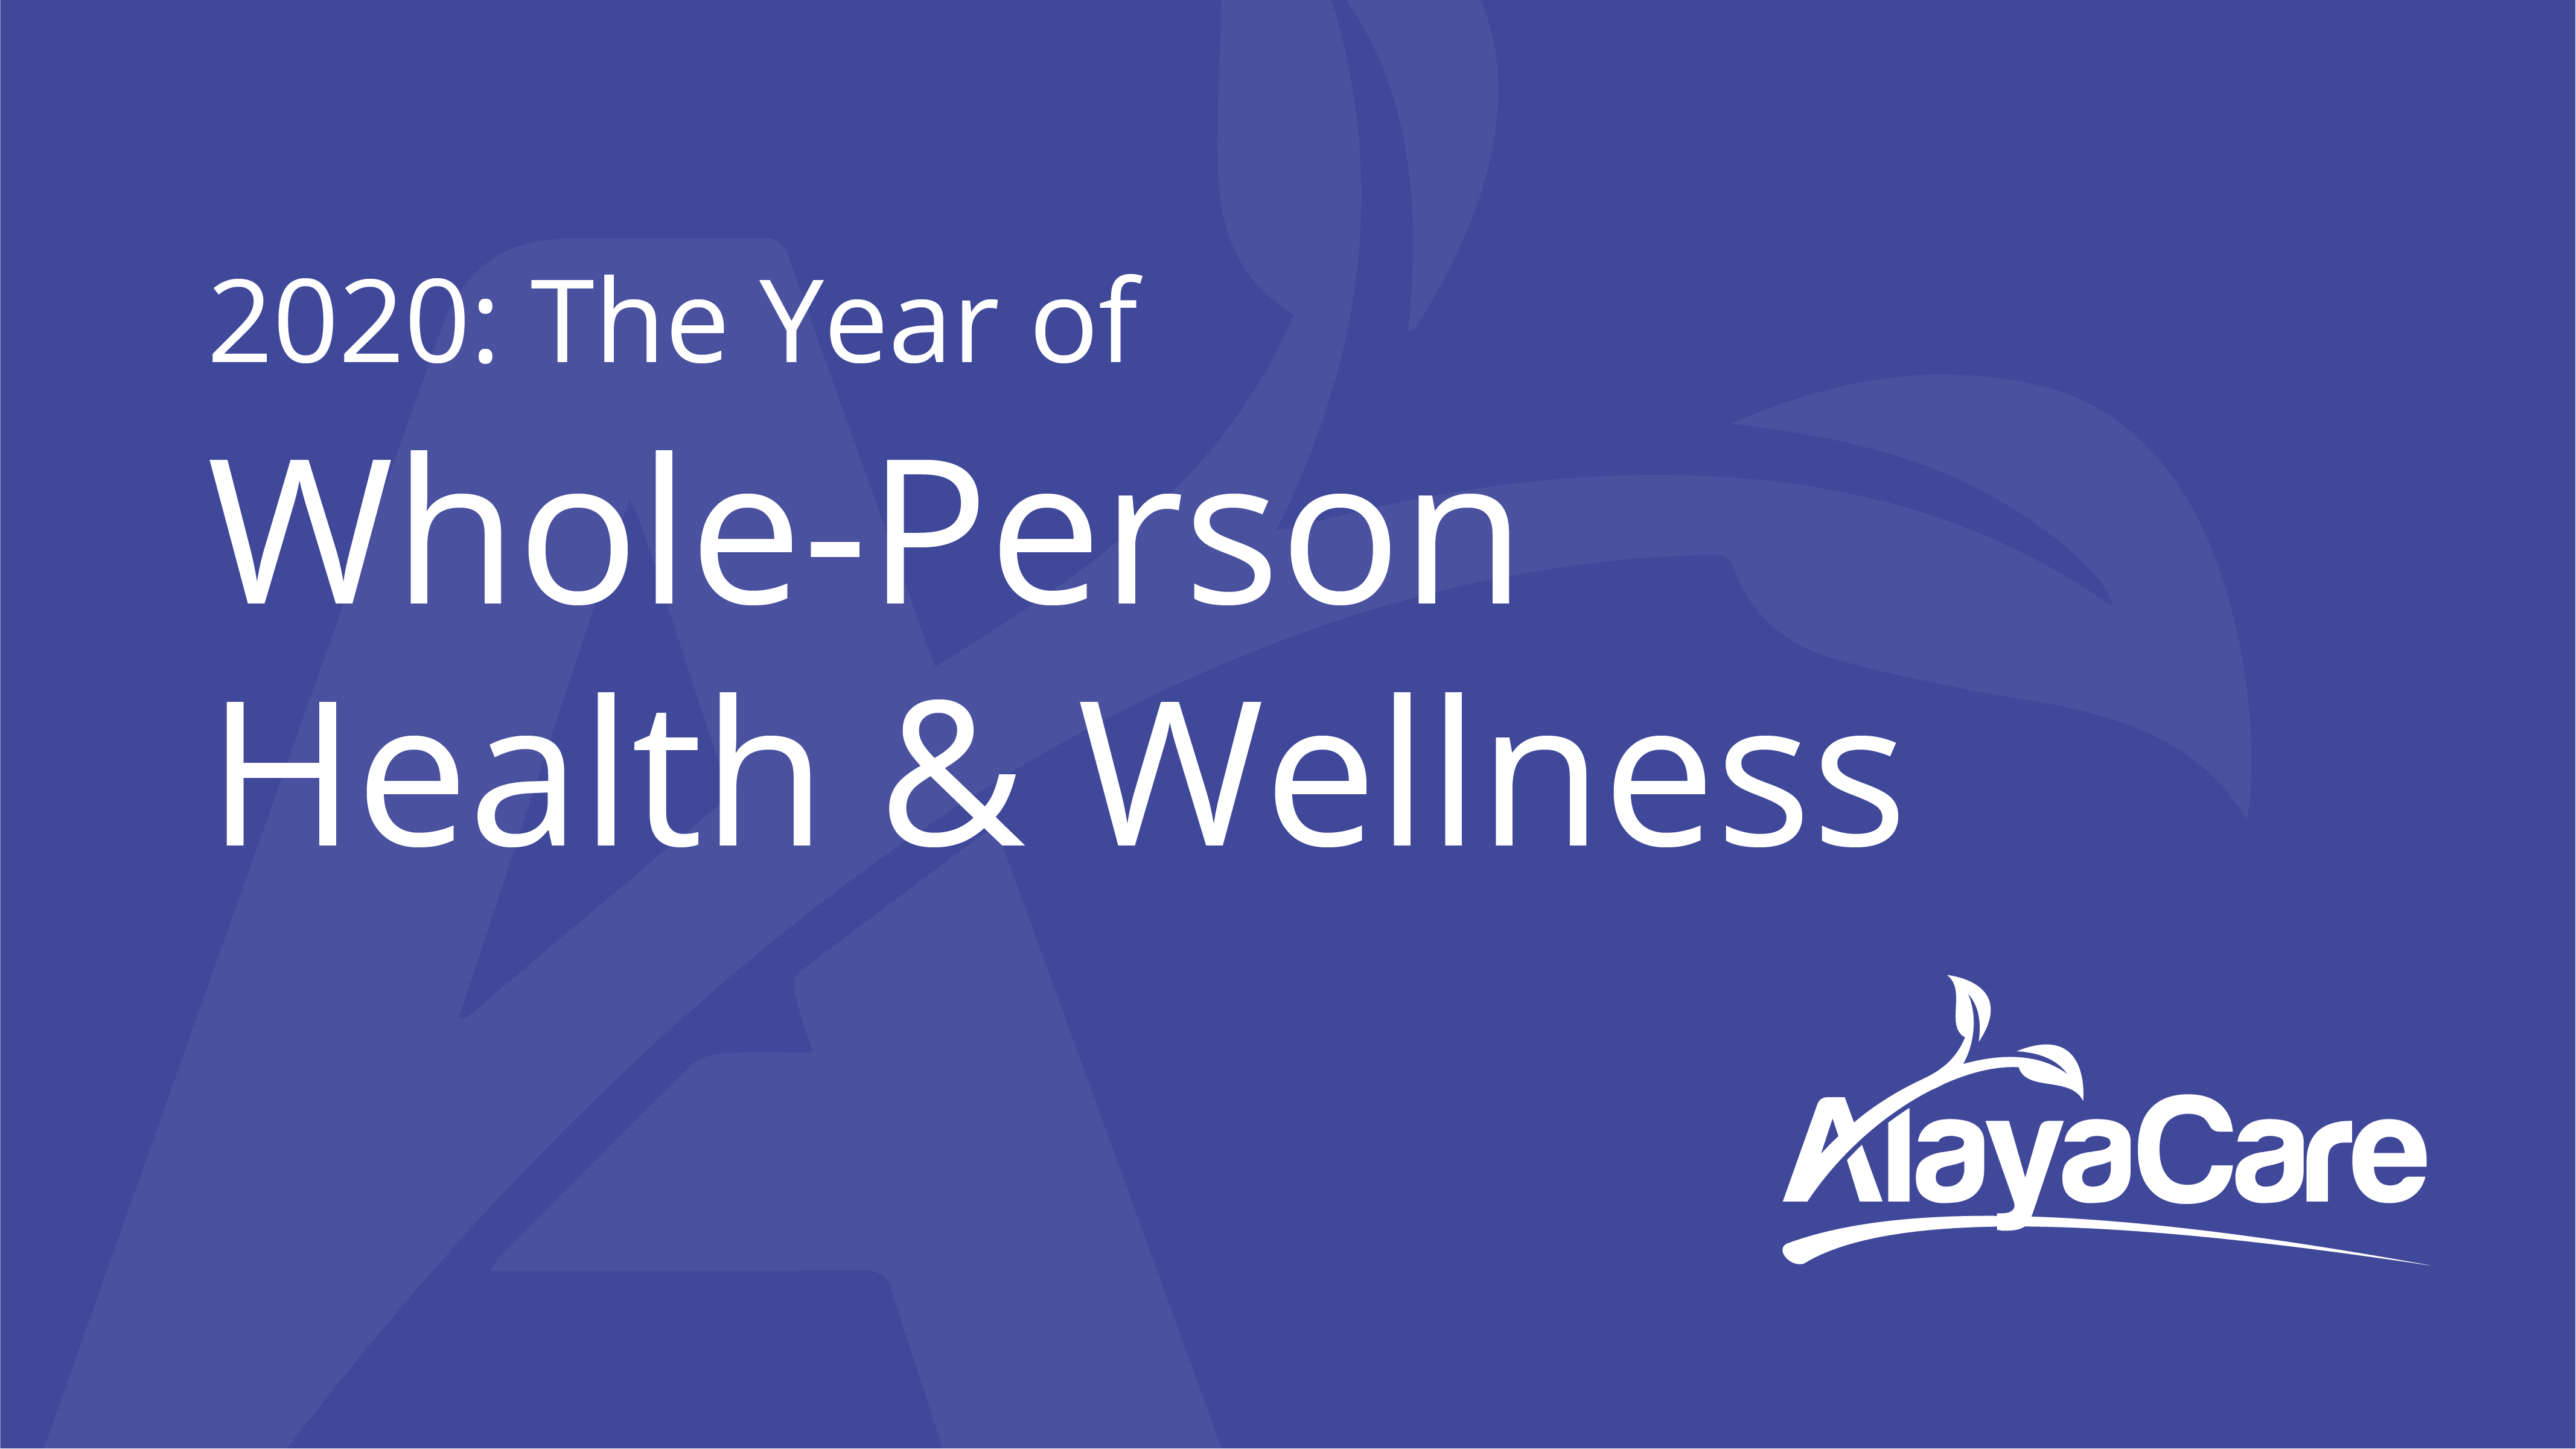 2020: The Year of Whole-Person Health and Wellness